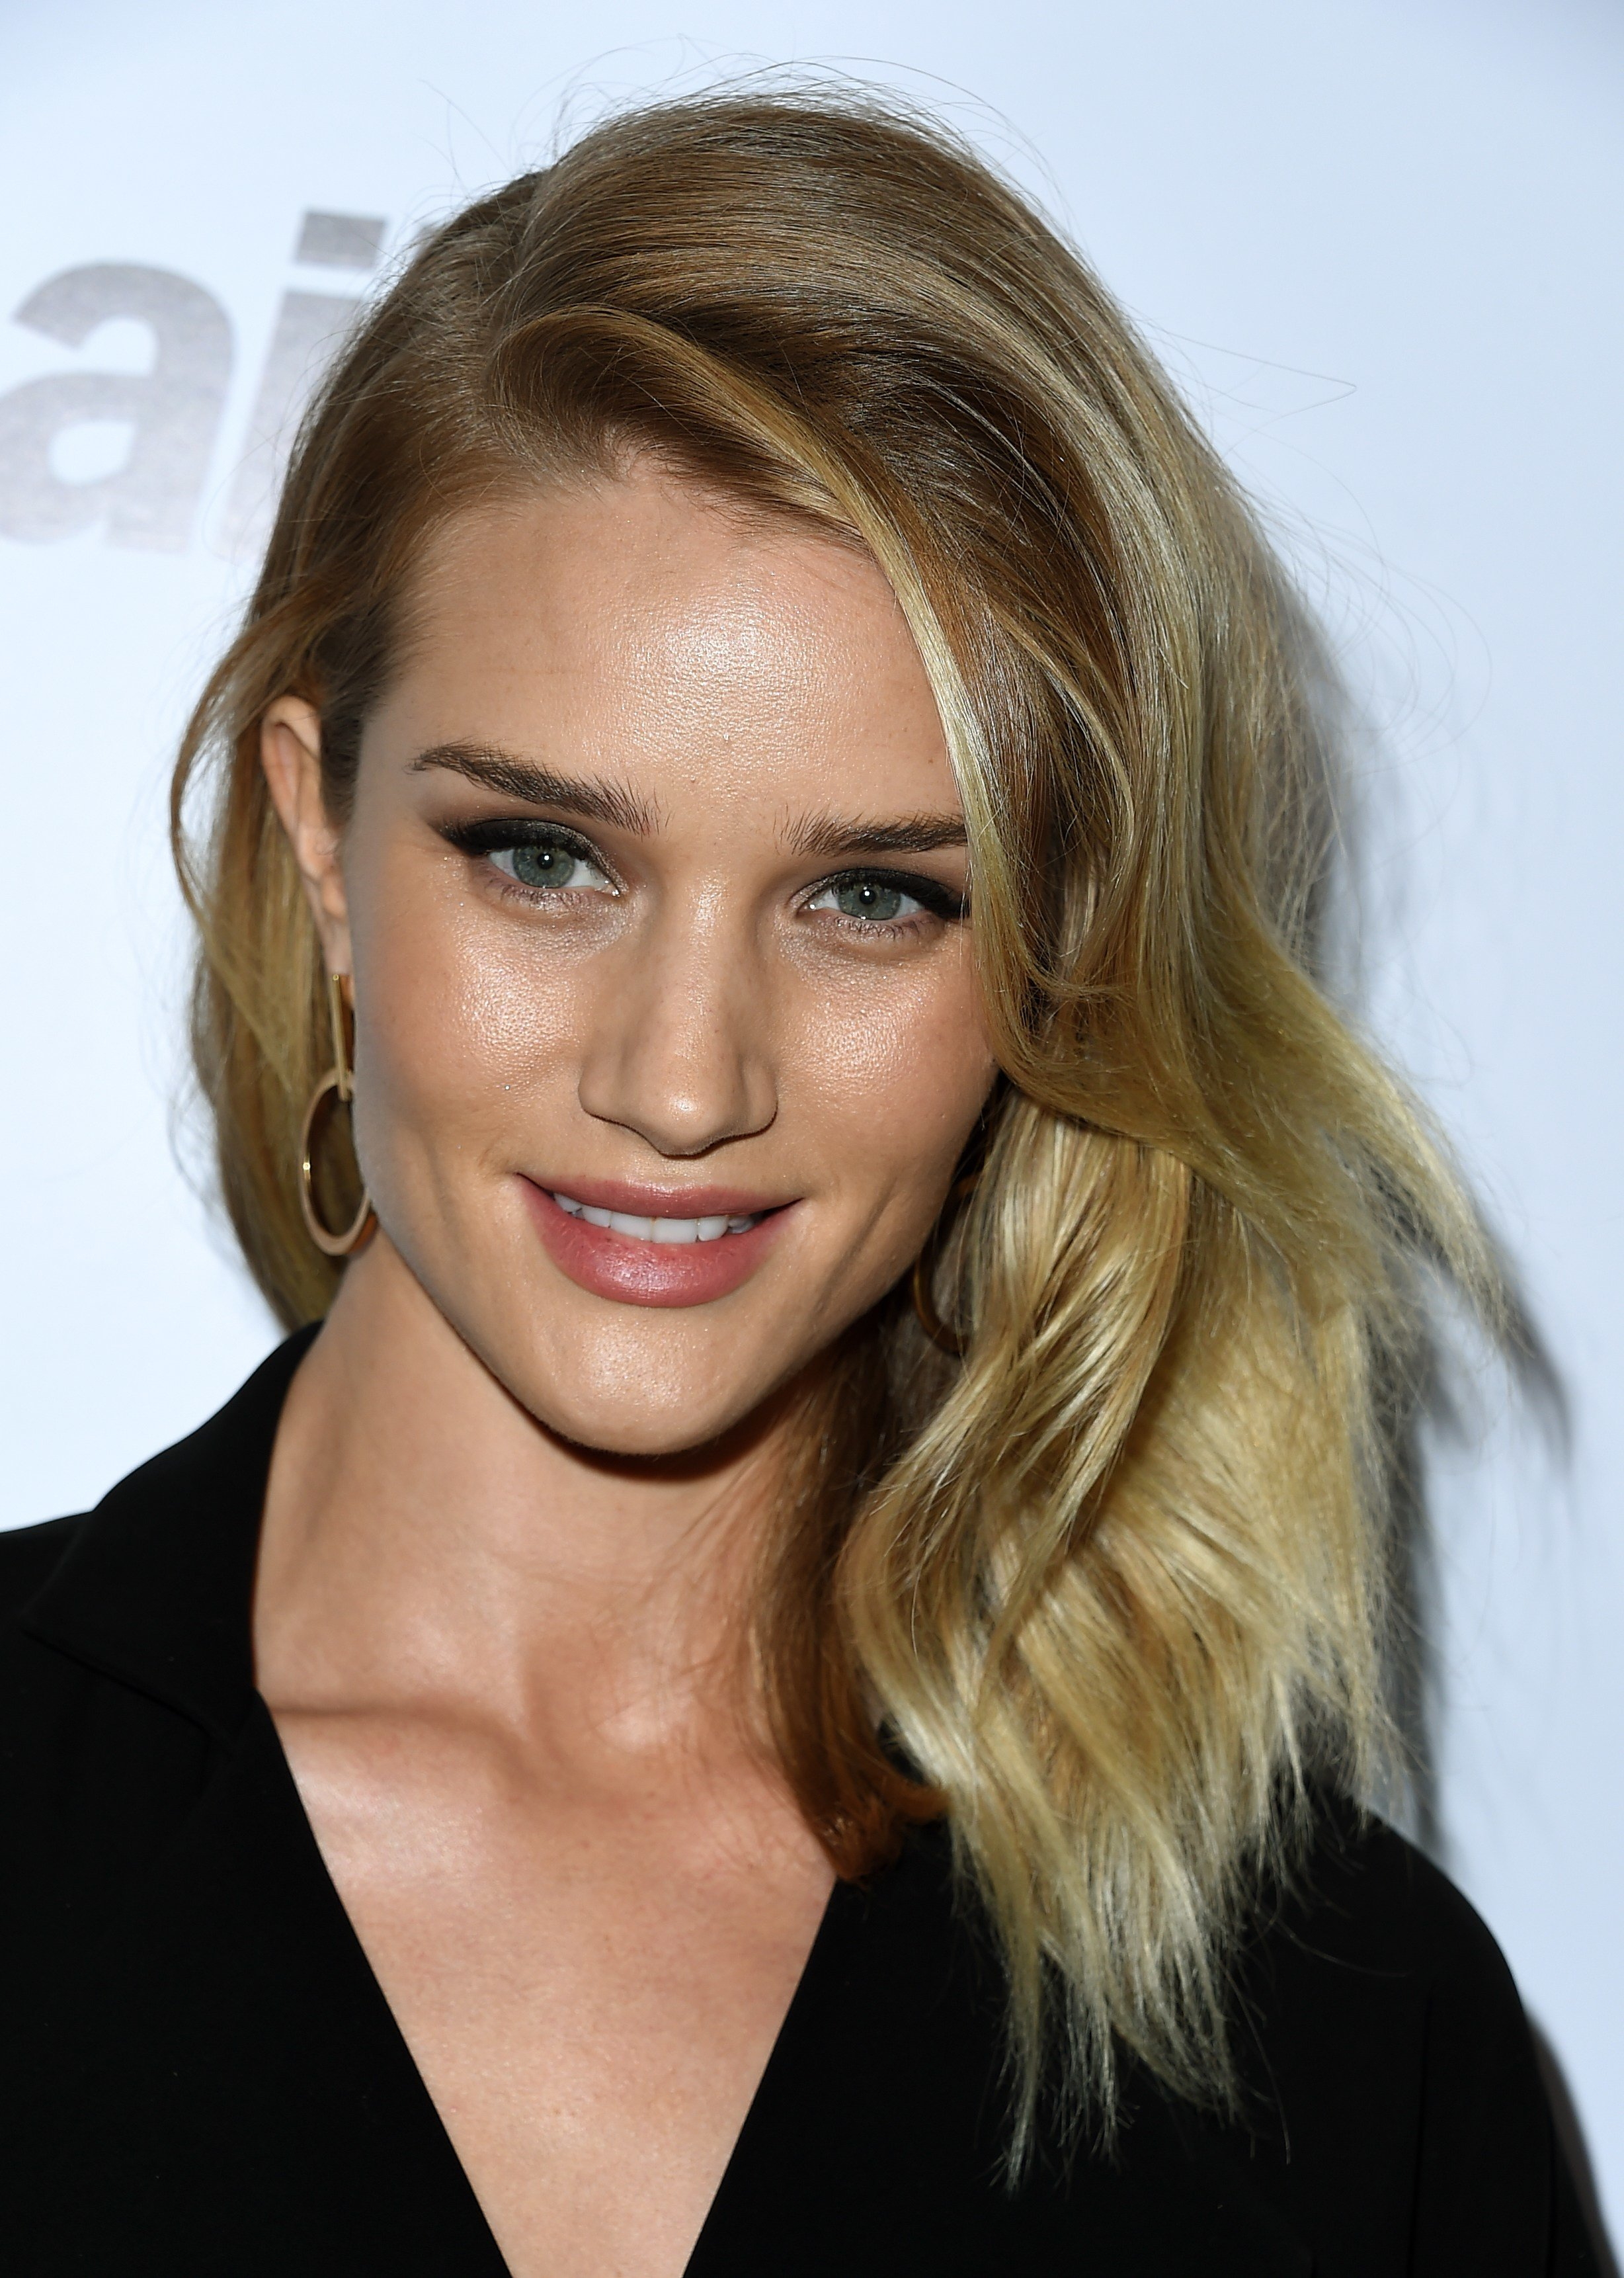 The Best The 10 Best Hairstyles For Square Faces Pictures